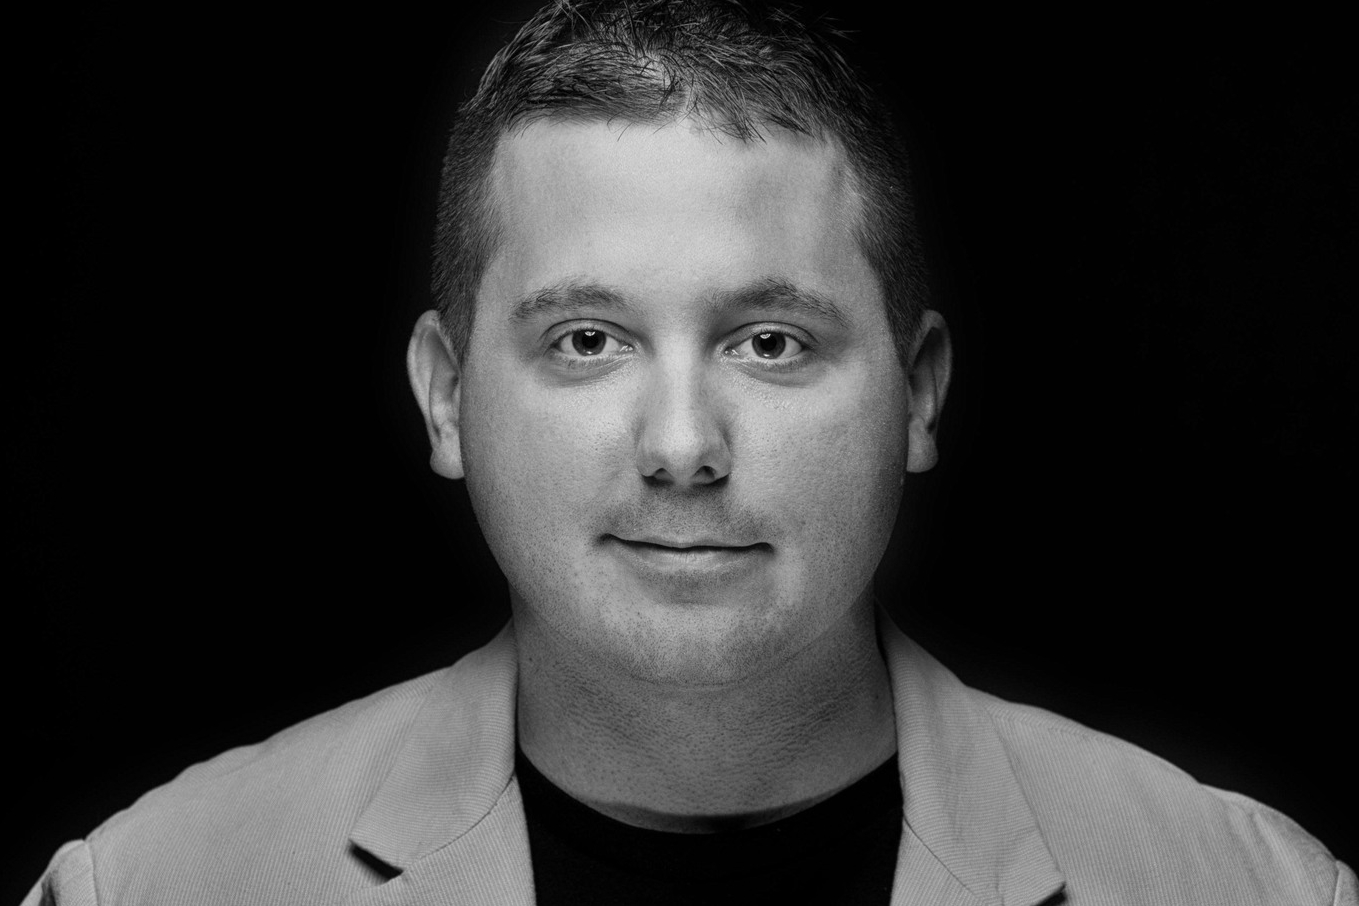 Cody Ash is the founder and lead instructor at Central Texas Studios